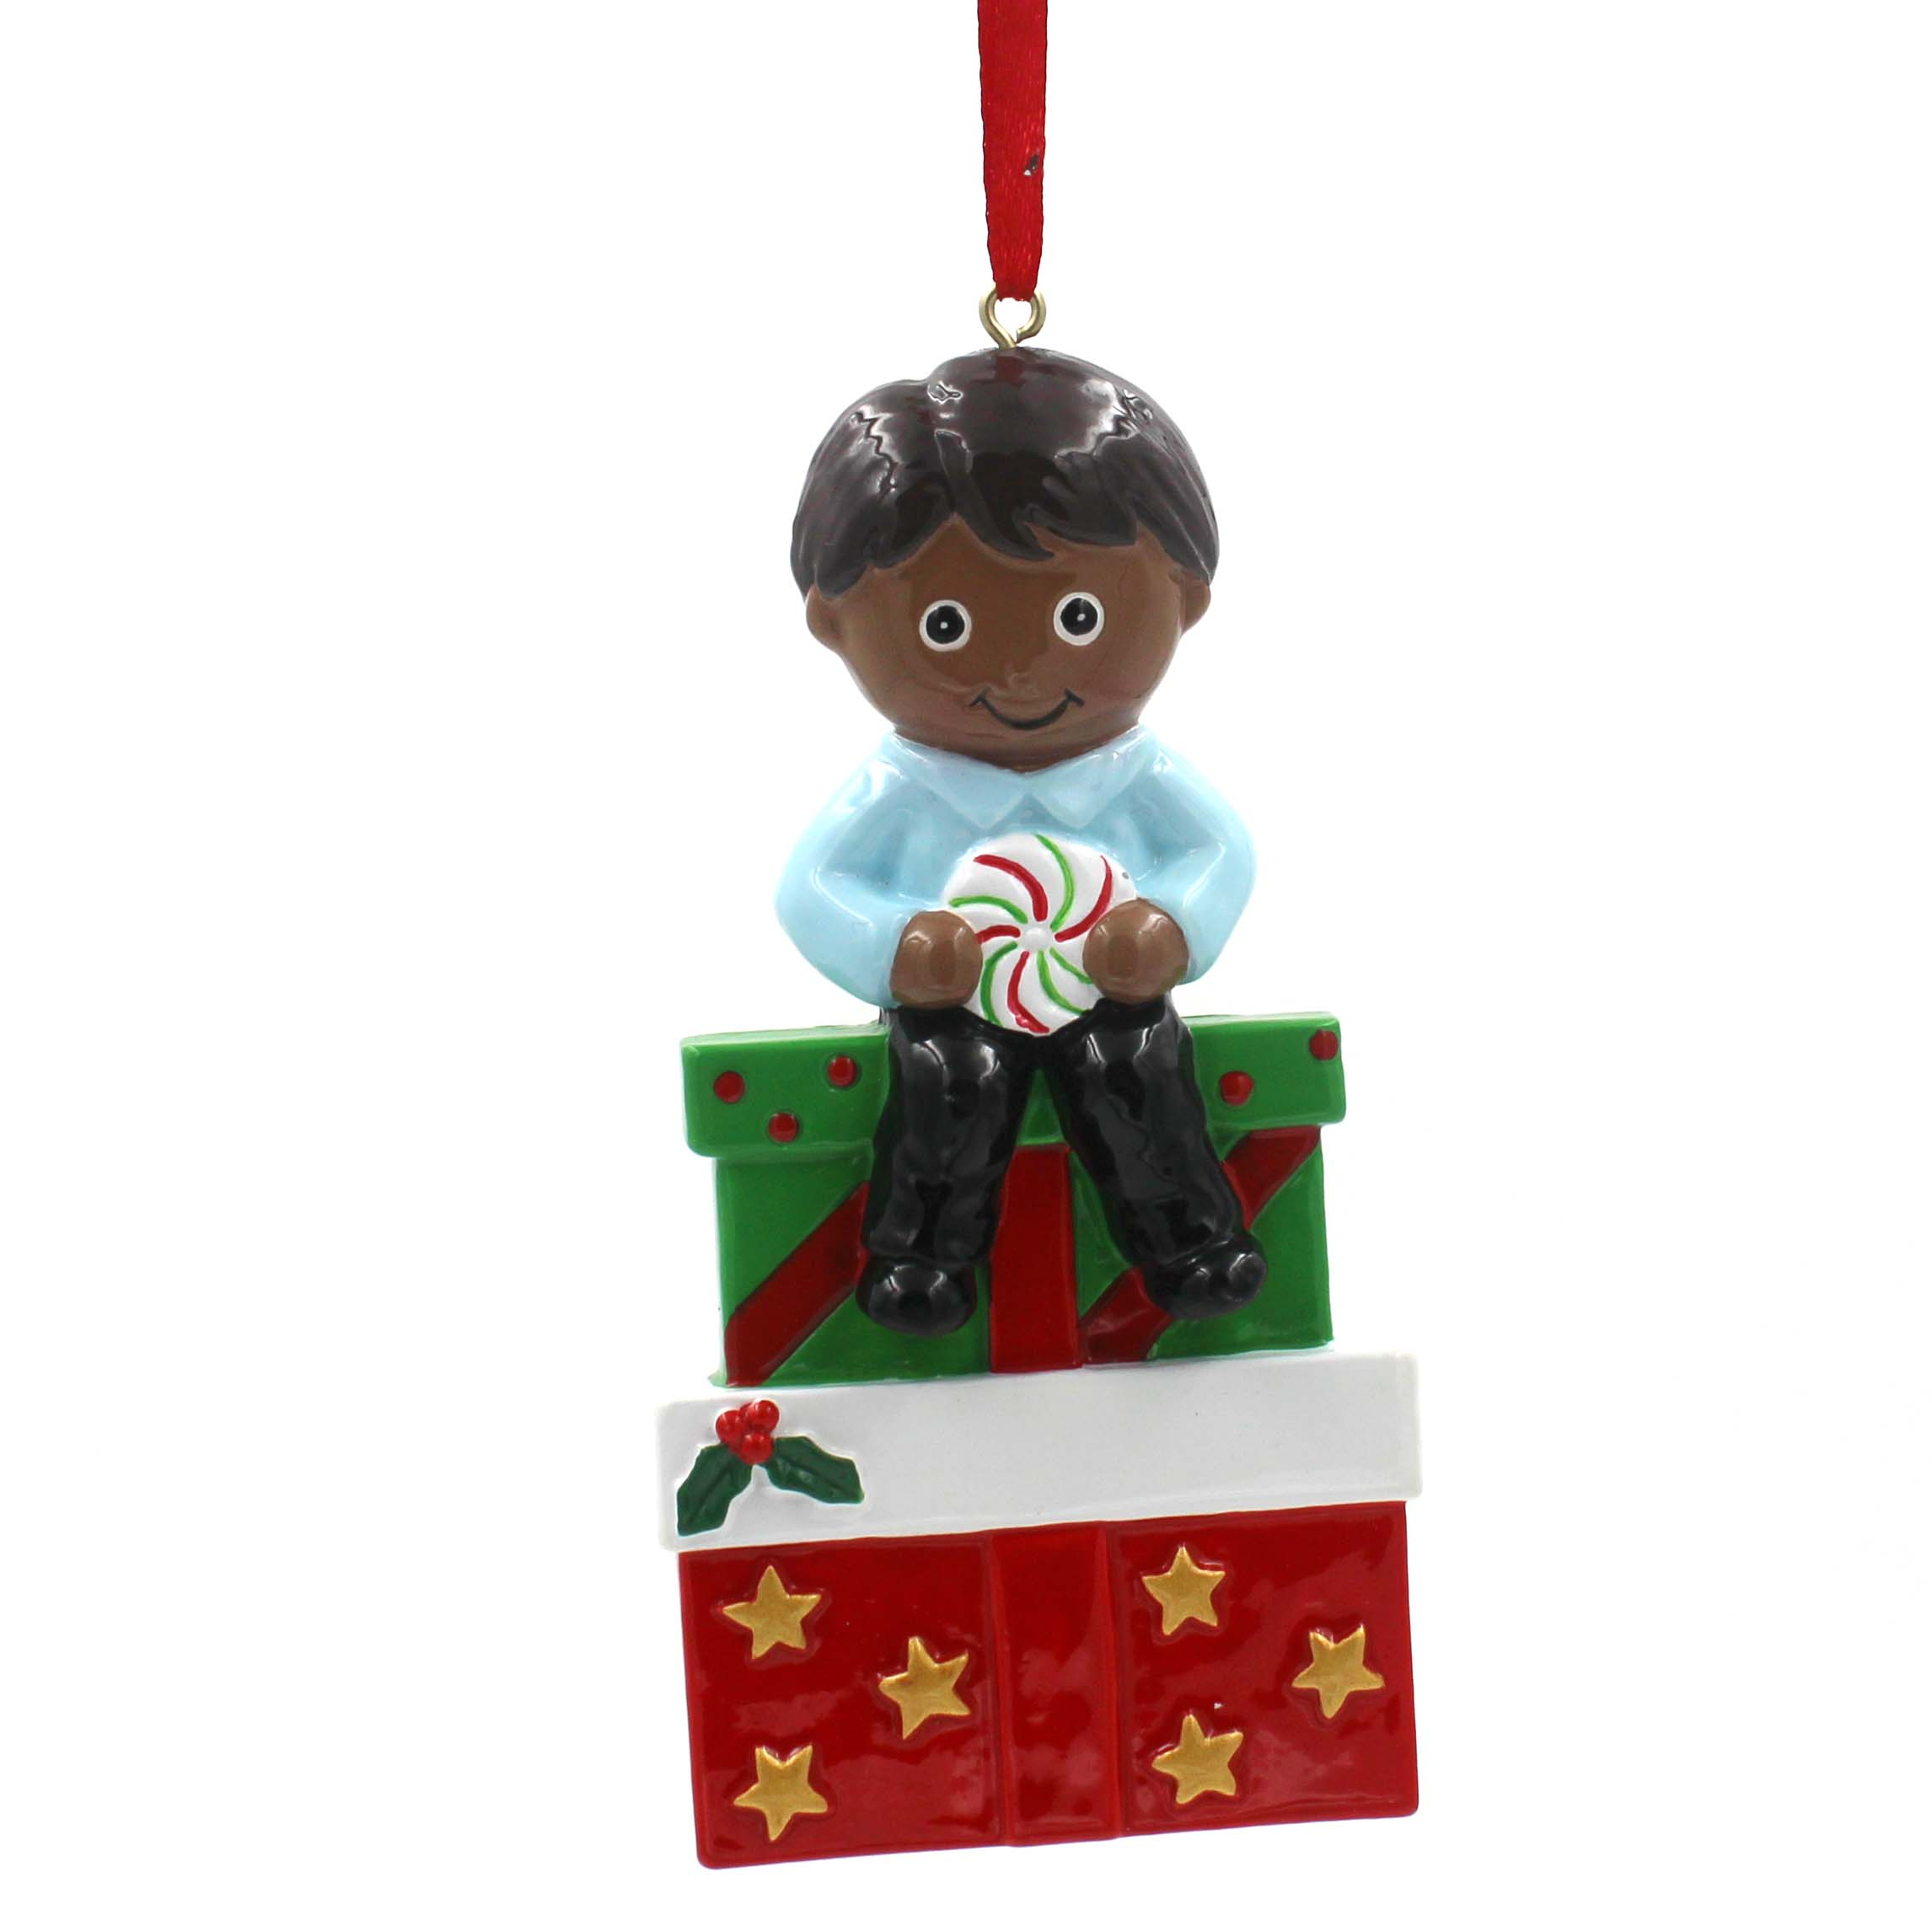 Gift Box With Boy Ornament Personalized Christmas Tree Ornament